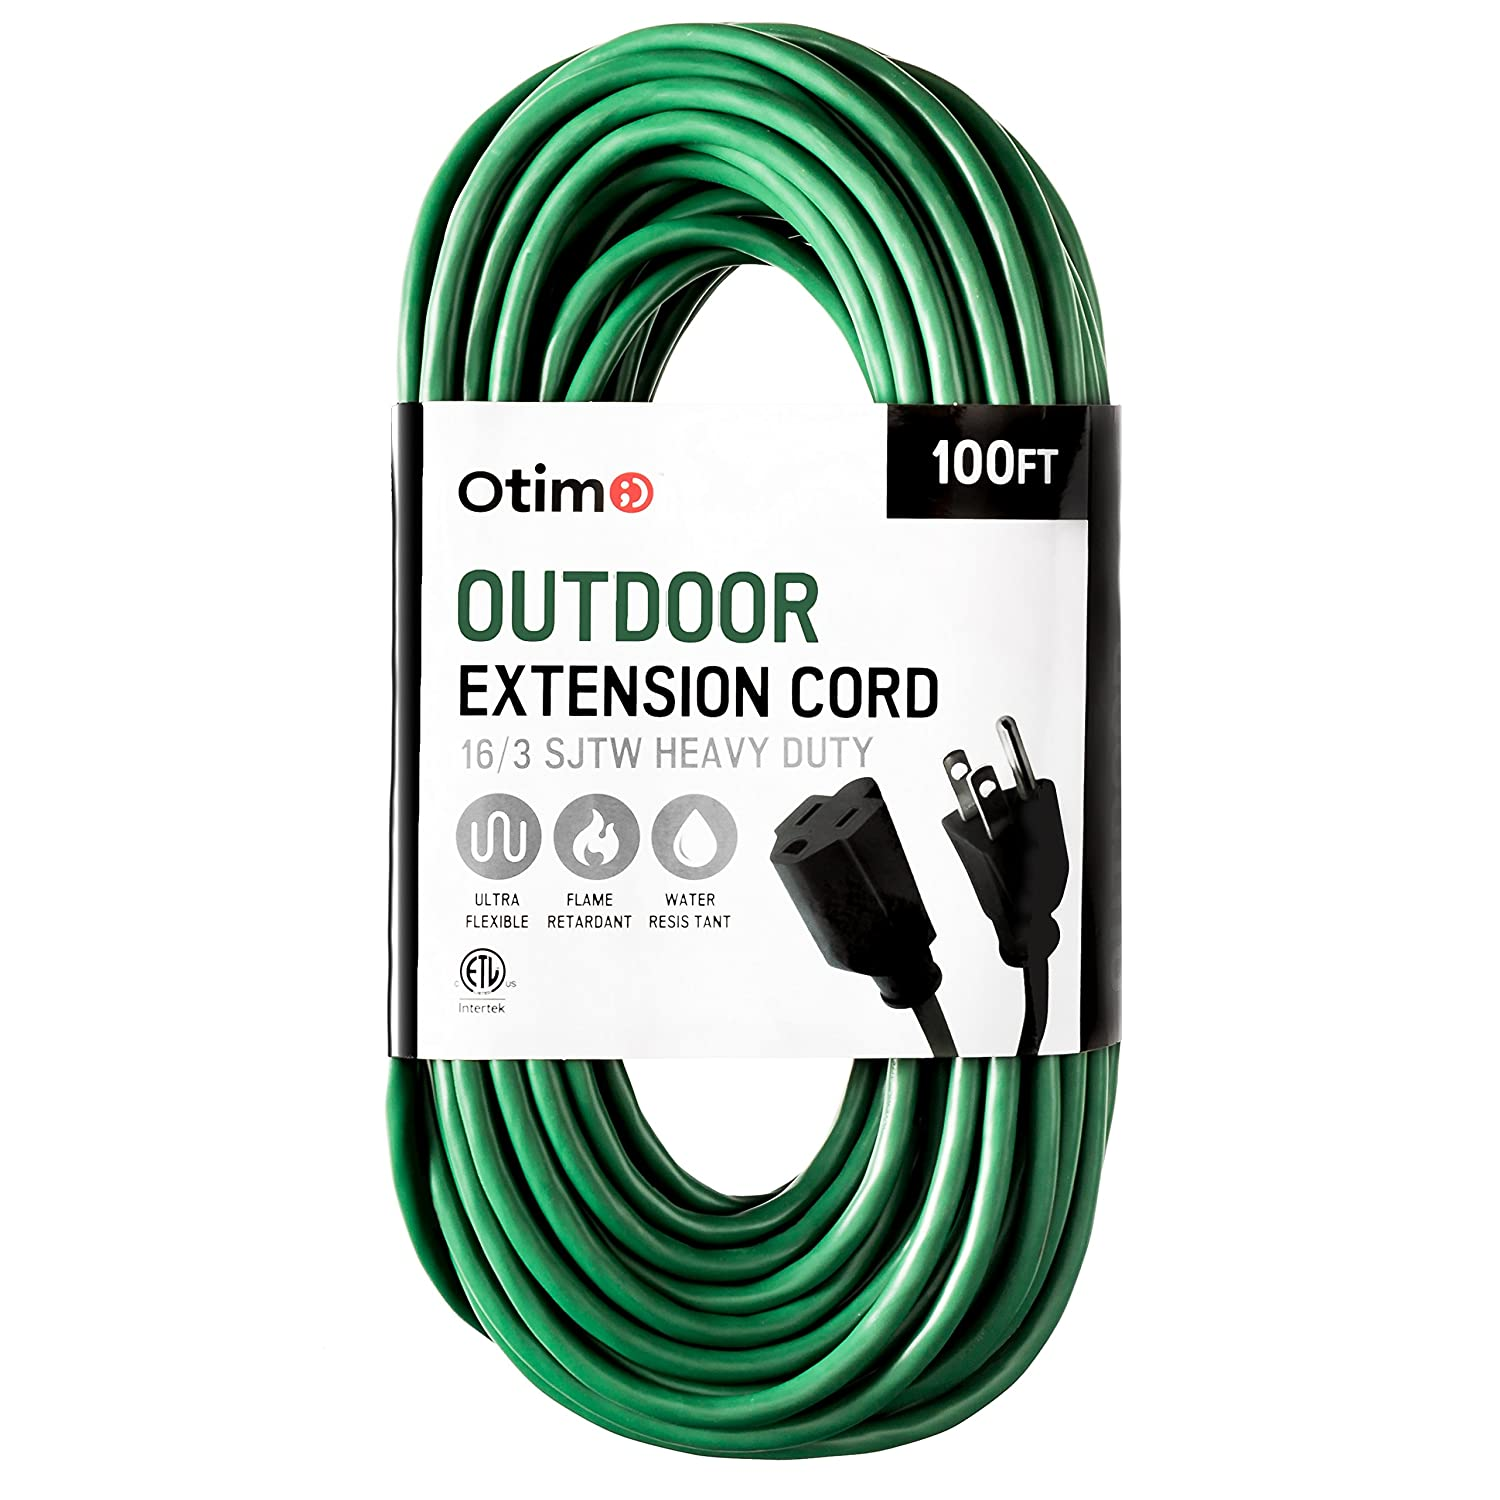 Otimo 100 ft 16/3 Outdoor Heavy Duty Extension Cord - 3 Prong ...